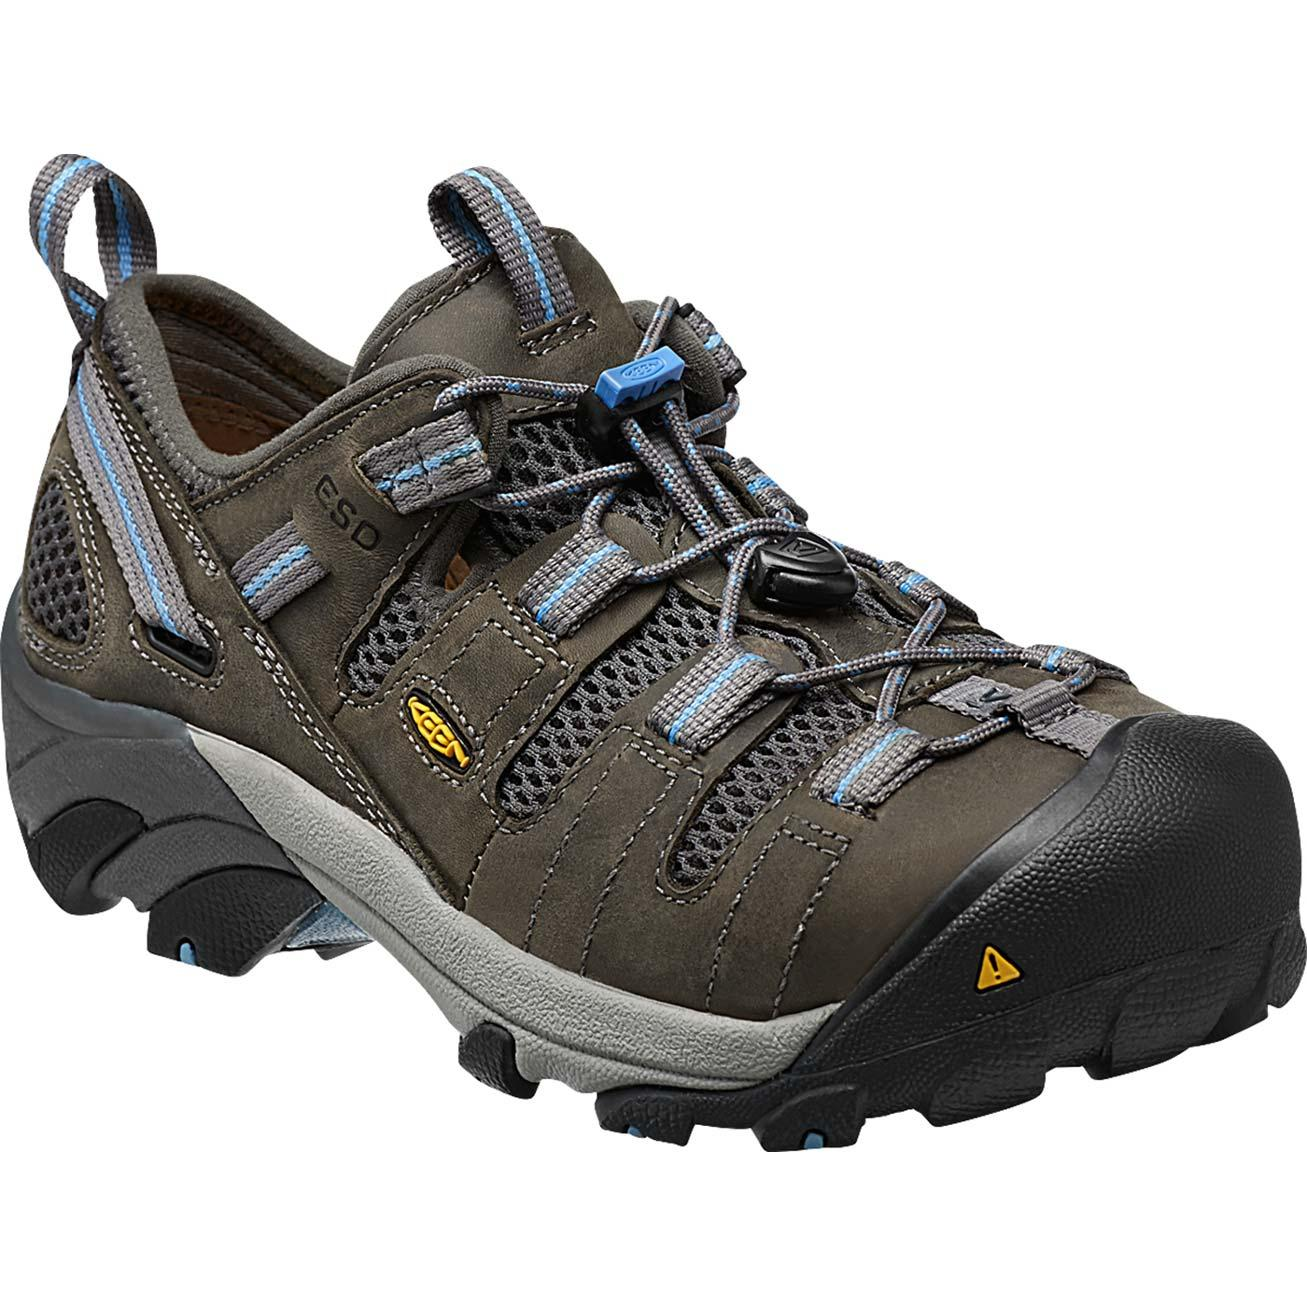 Keen Extra Wide Shoes